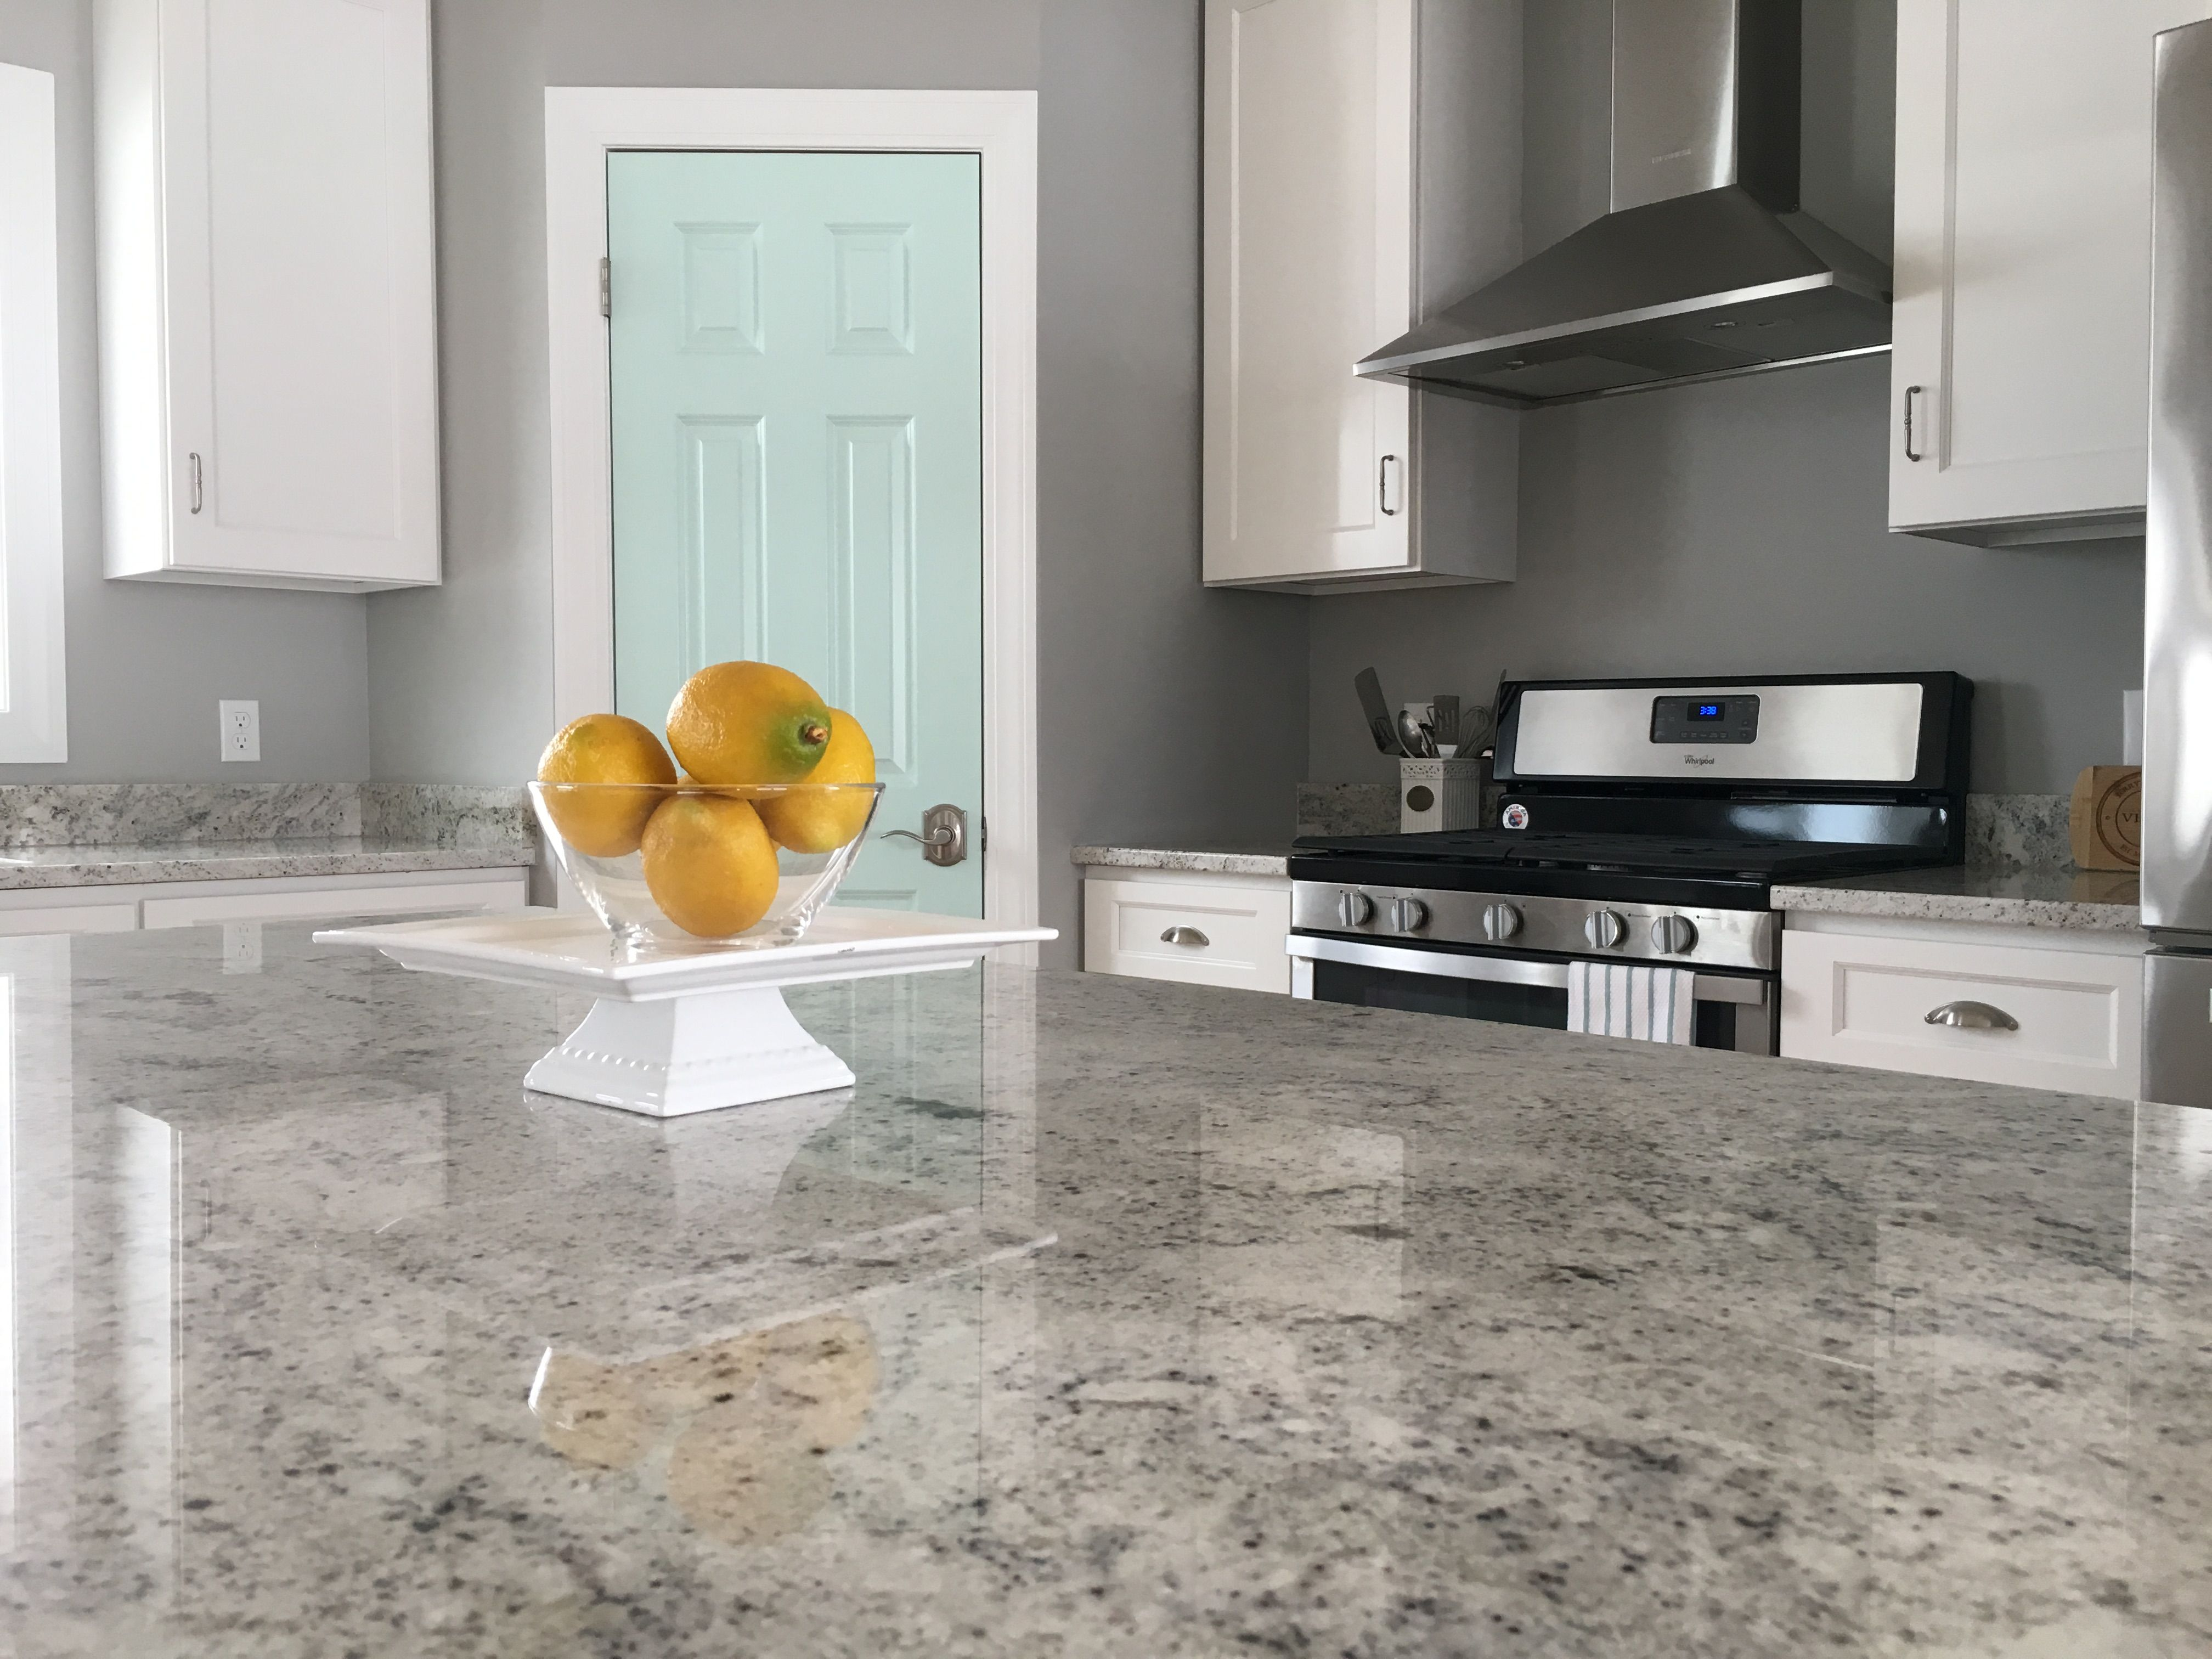 s surface pot on before maine countertops think buy in hot best page solid you wallingford granite pots the